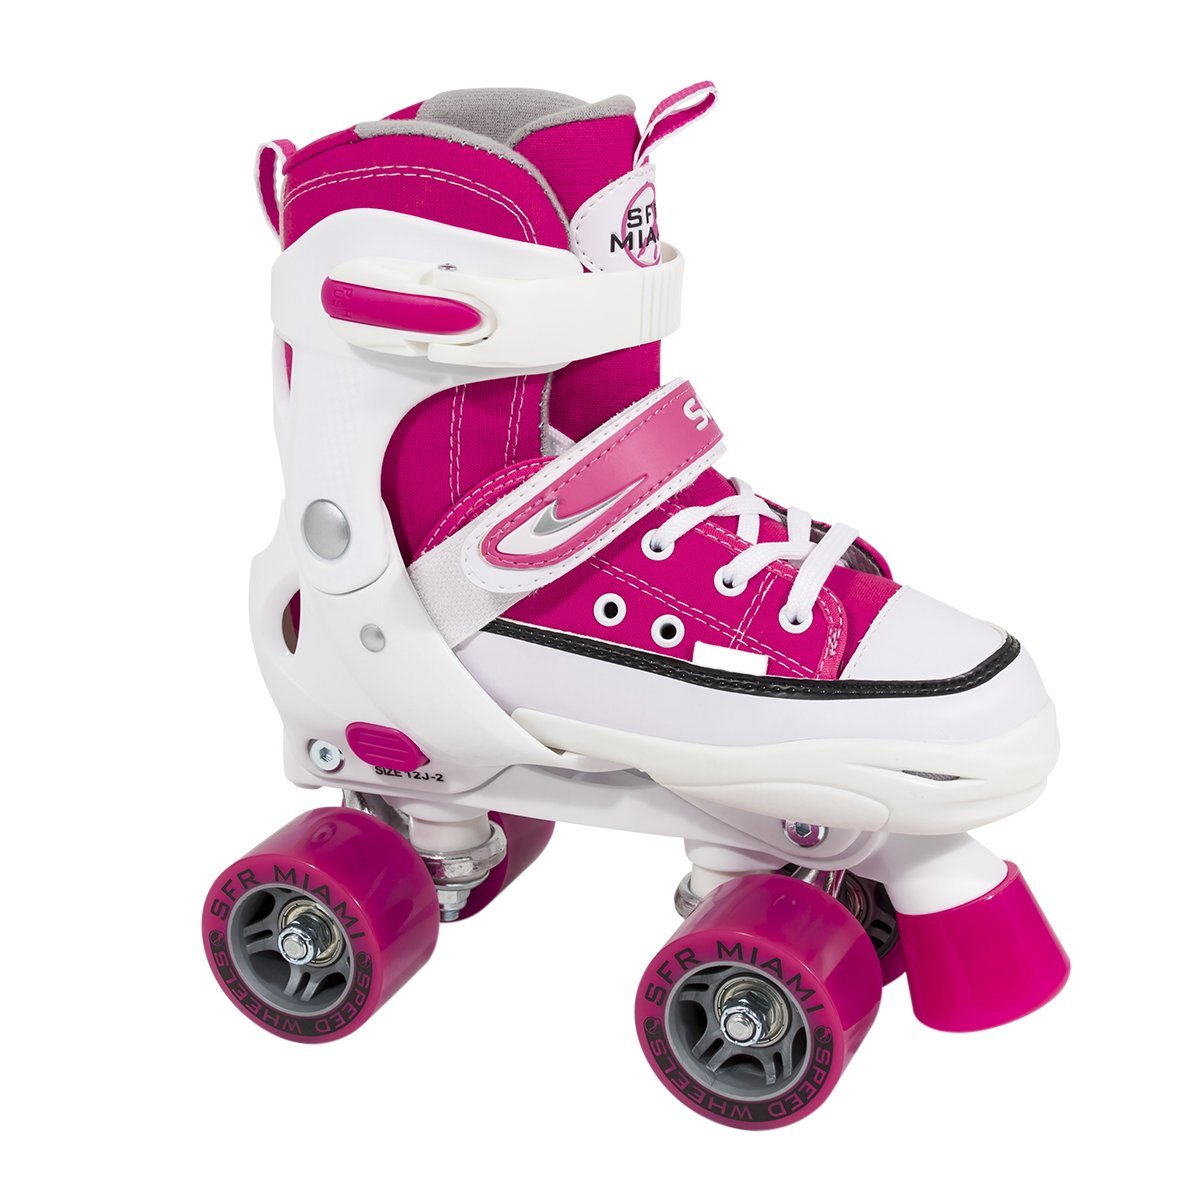 SFR Miami Kids Quads Pink/White